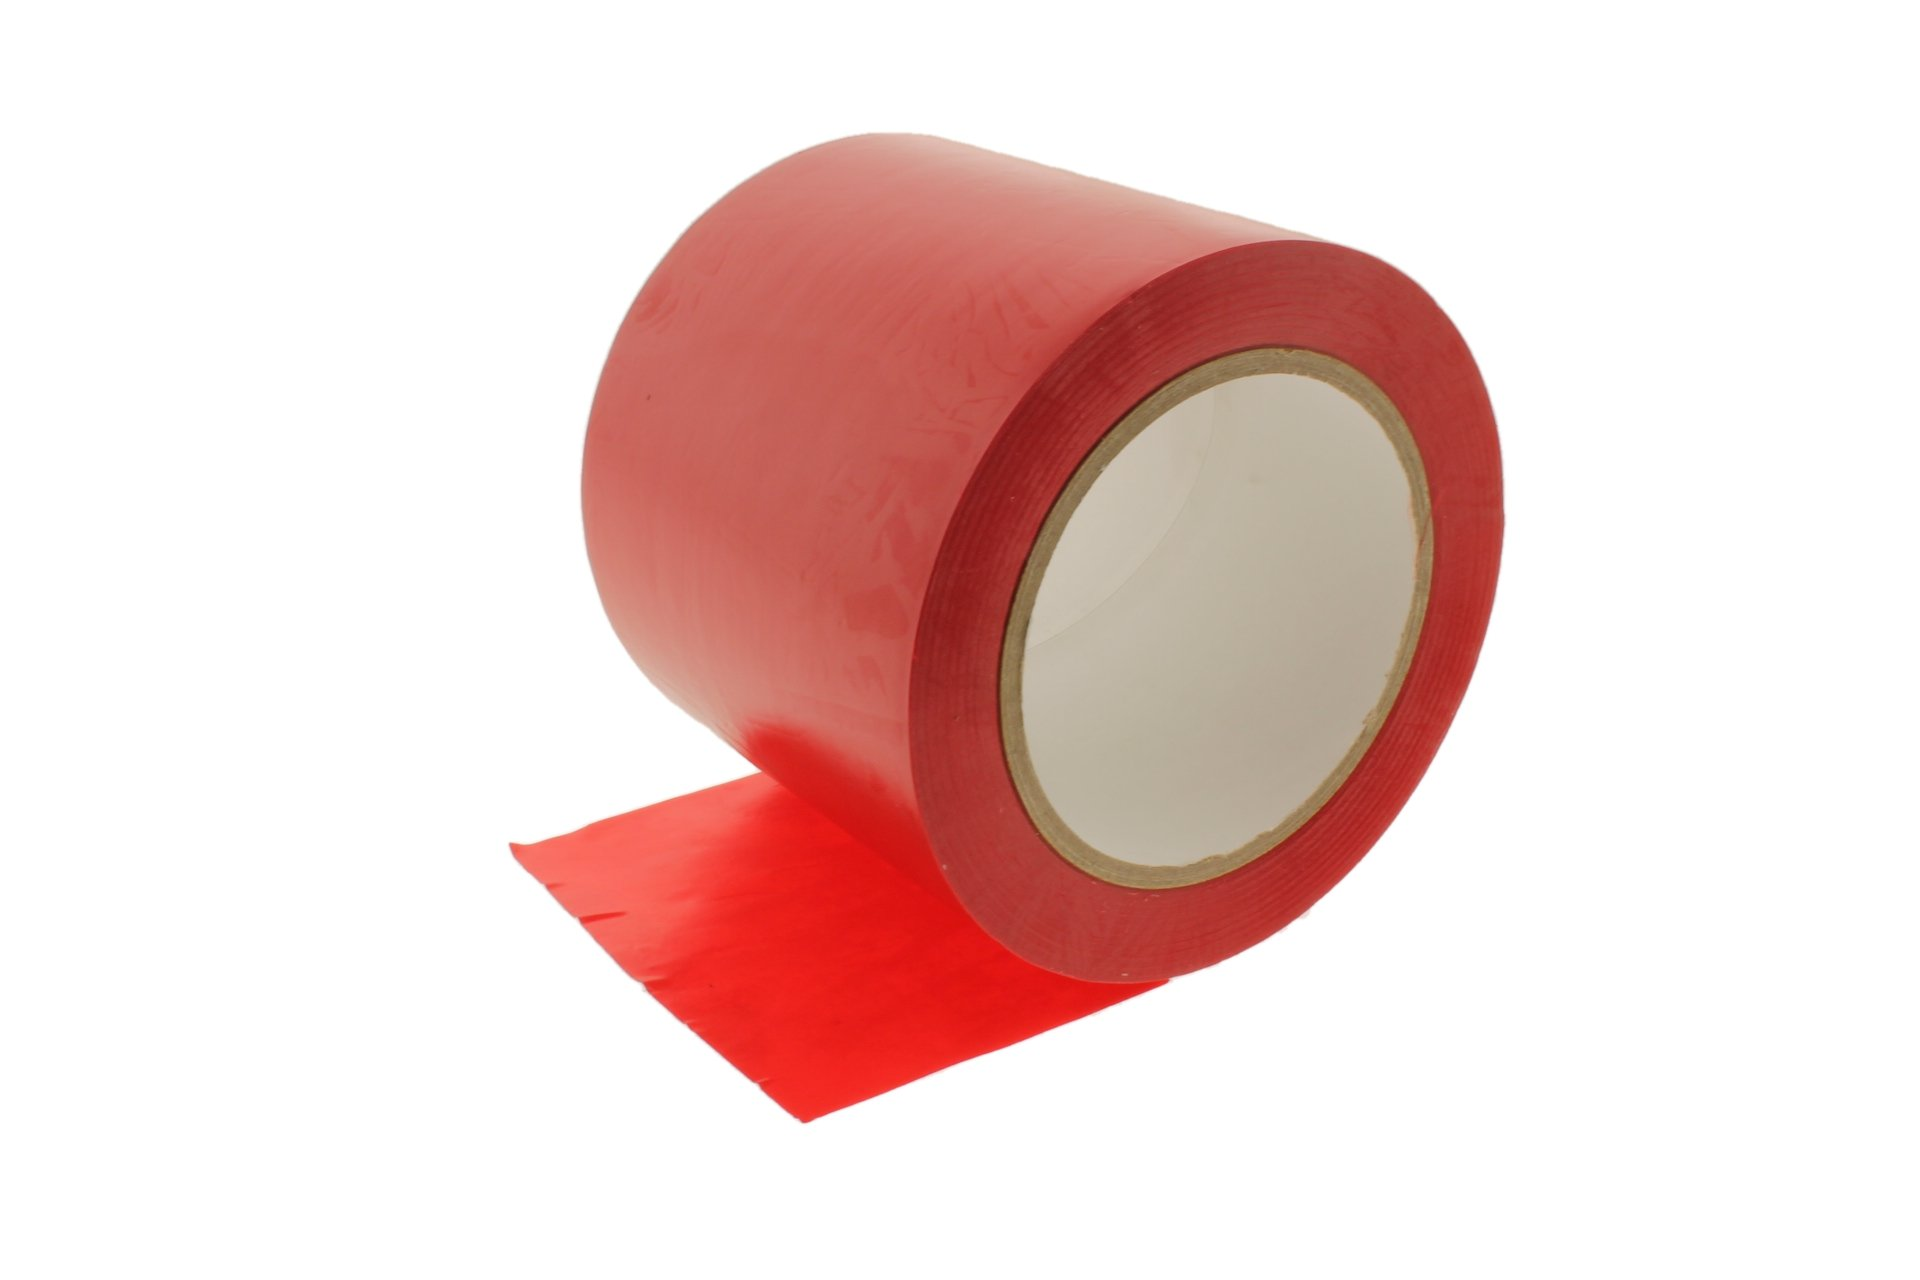 4'' General Purpose Red Insulated Adhesive PVC Vinyl Sealing Coding Marking Electrical Tape (3.76 in 96MM) 36 yard 7 mil by WhiteCore